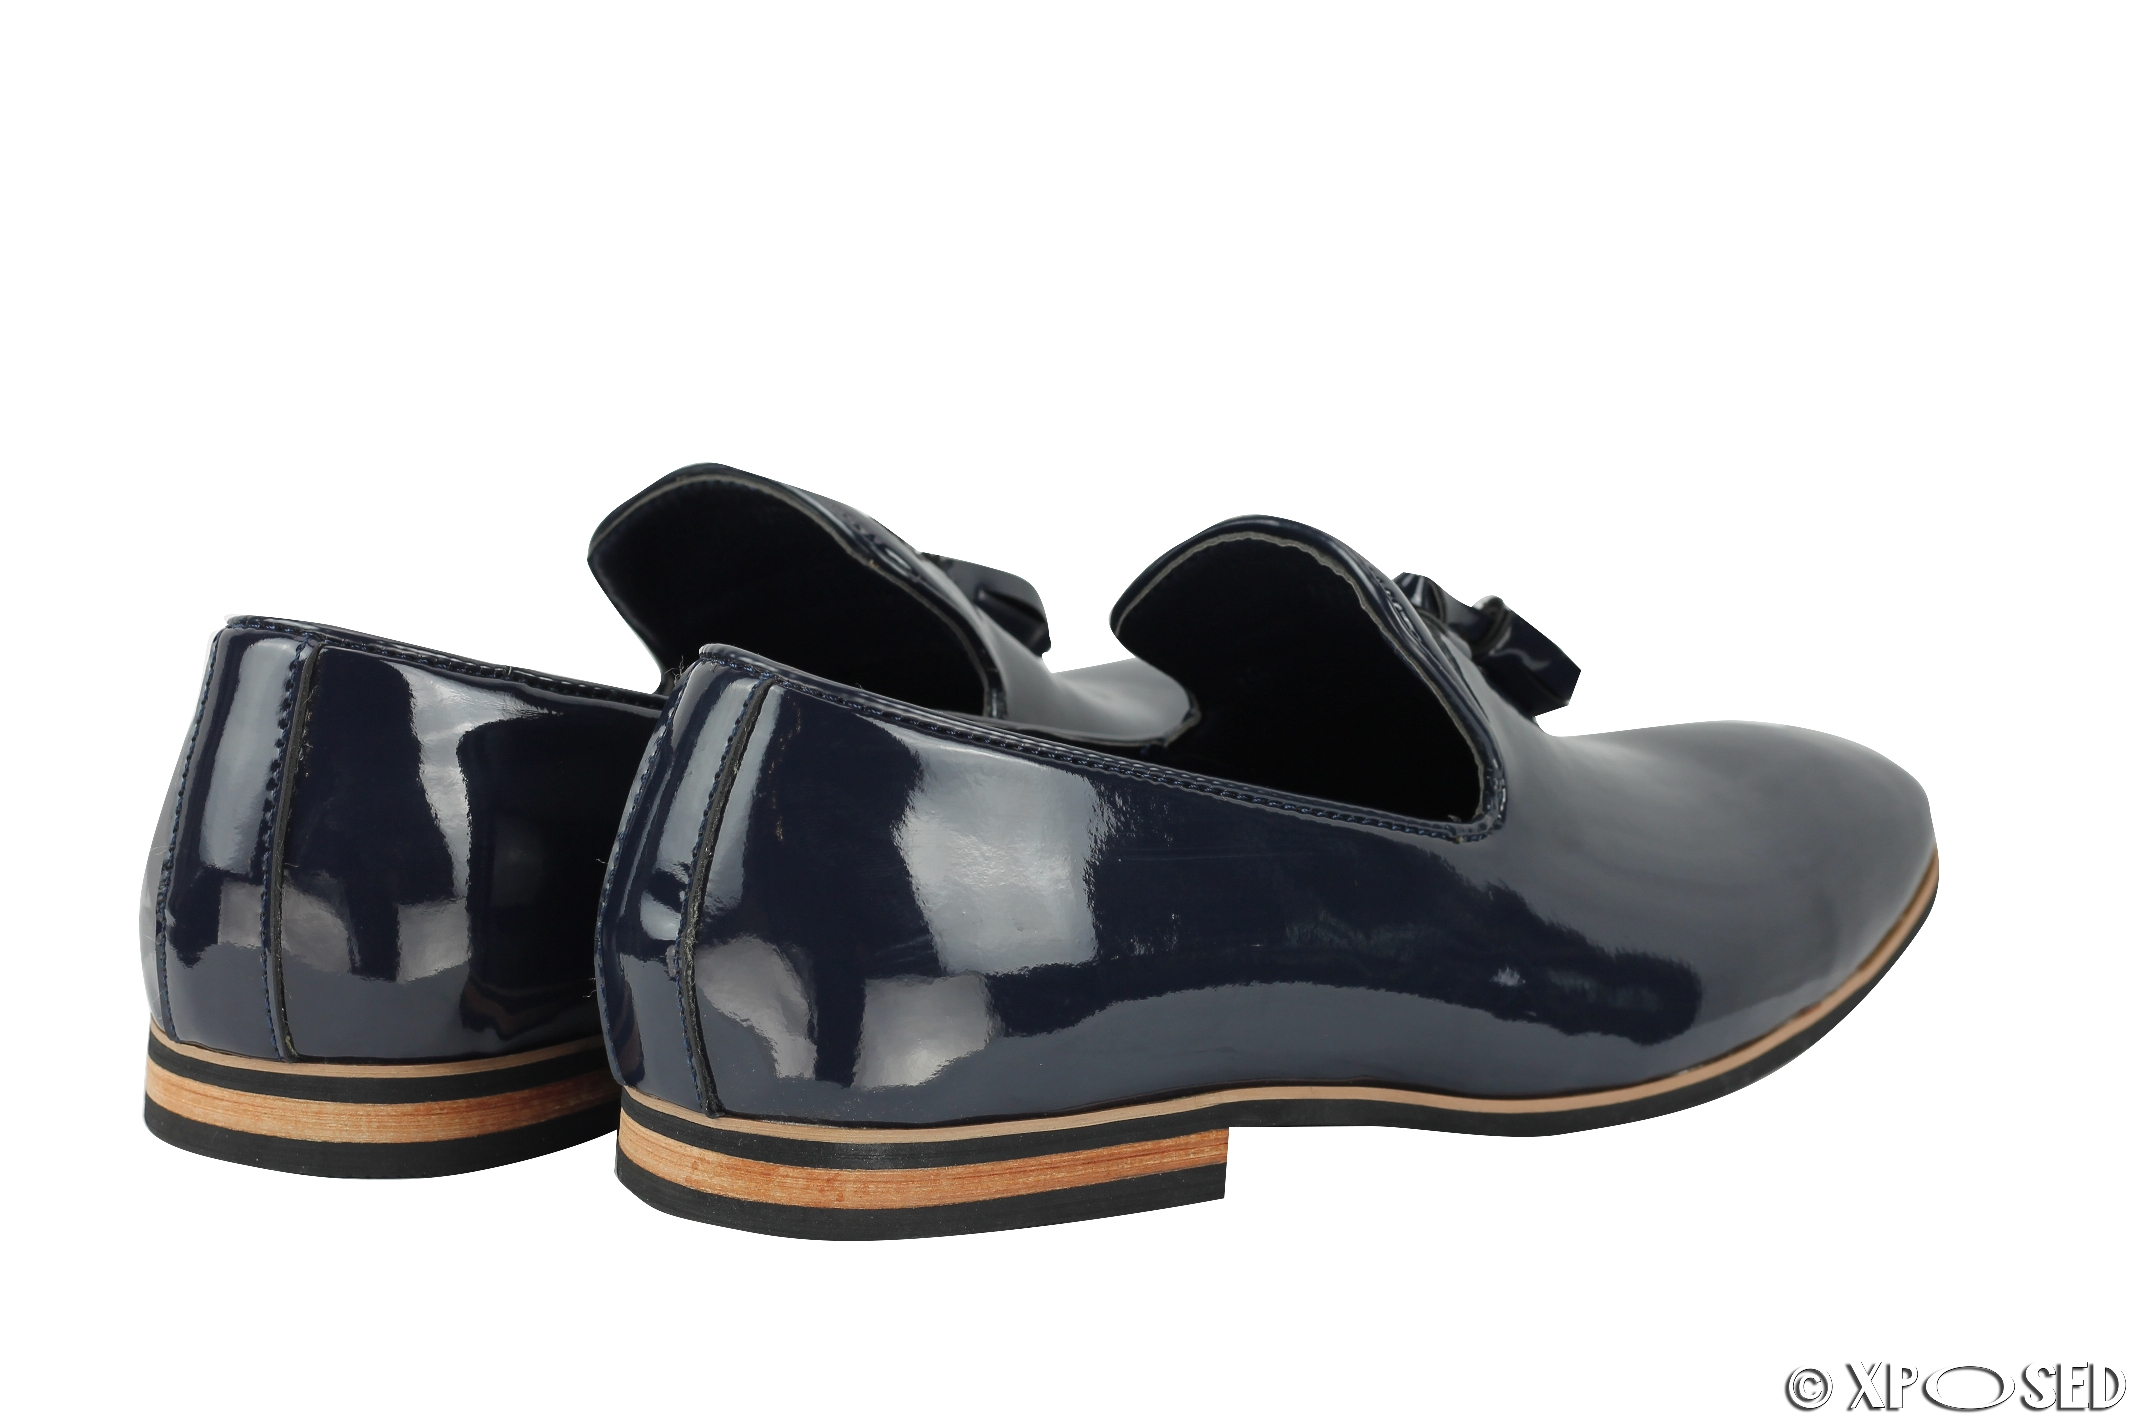 Mens Tassel Loafers Shiny Patent Leather Line Slip On Smart Casual Driving Shoes | EBay